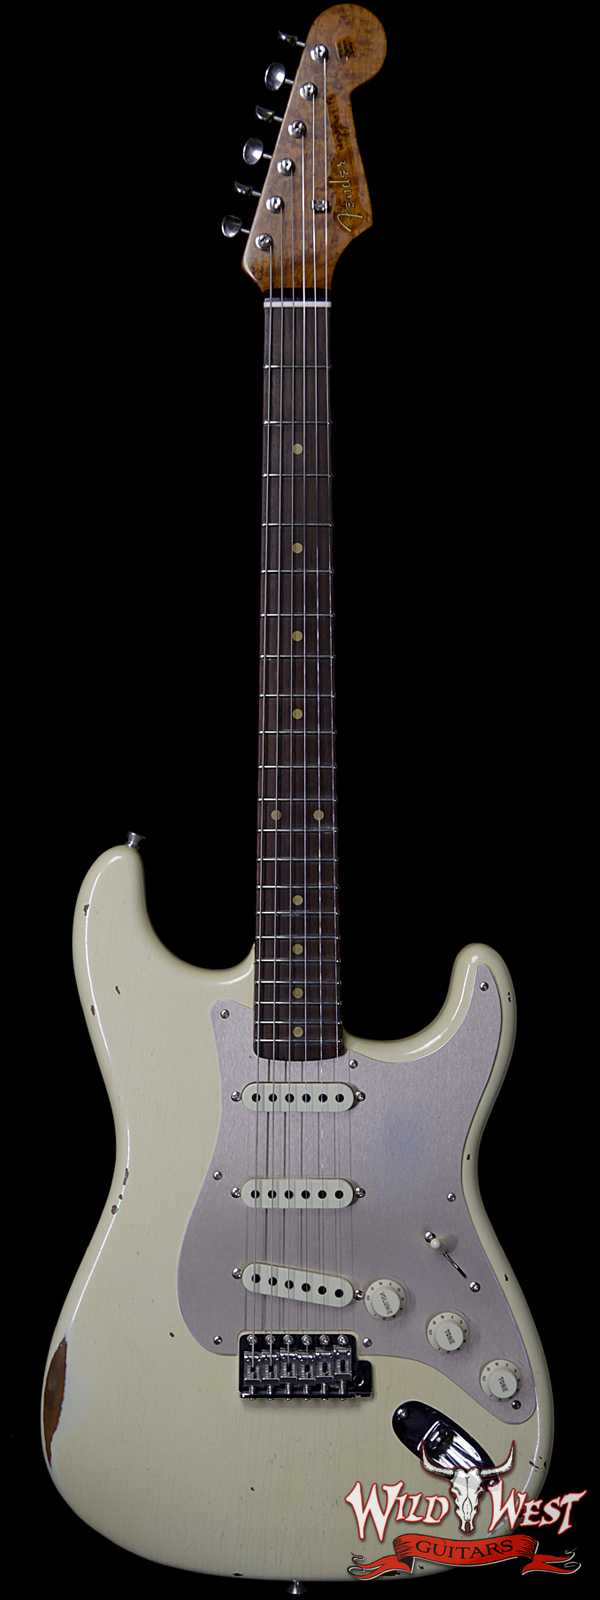 Fender Custom Shop Roasted 1960 Stratocaster Relic AAA Birdseye Maple Neck 3A Rosewood Slab Board Vintage White